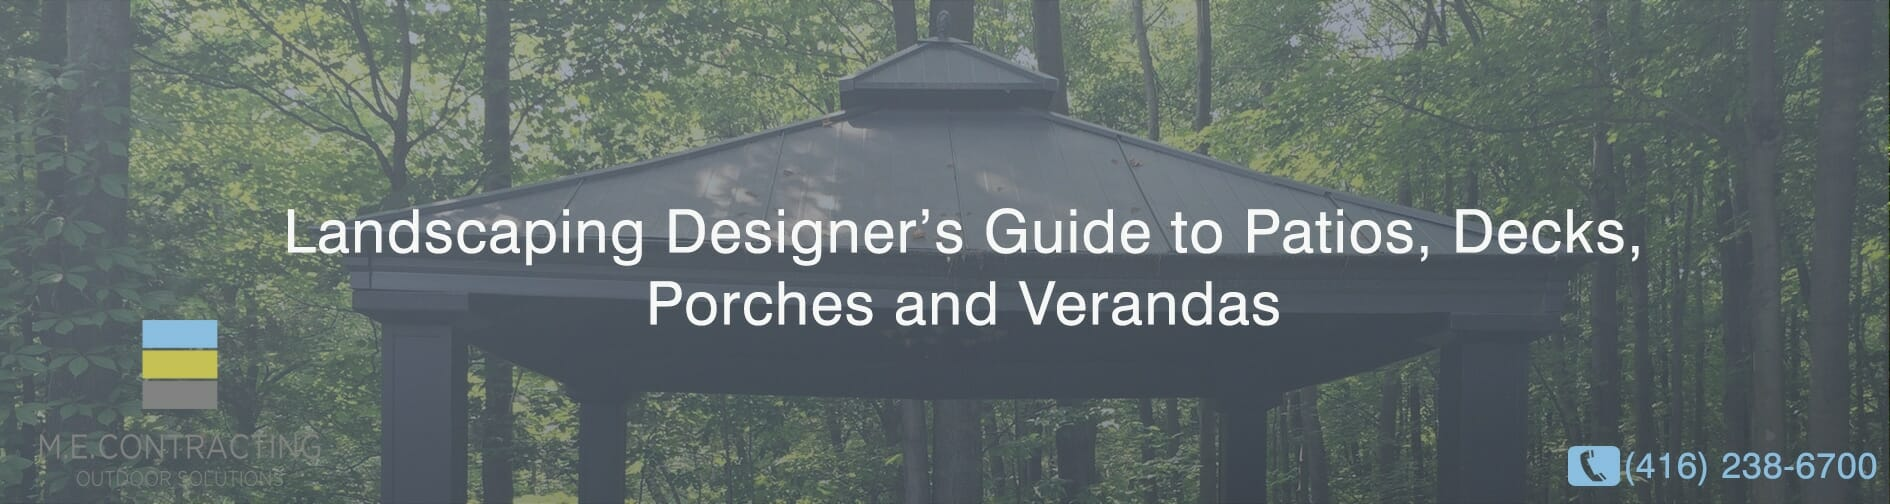 LANDSCAPING DESIGNER'S GUIDE TO PATIOS, DECKS, PORCHES AND VERANDAS